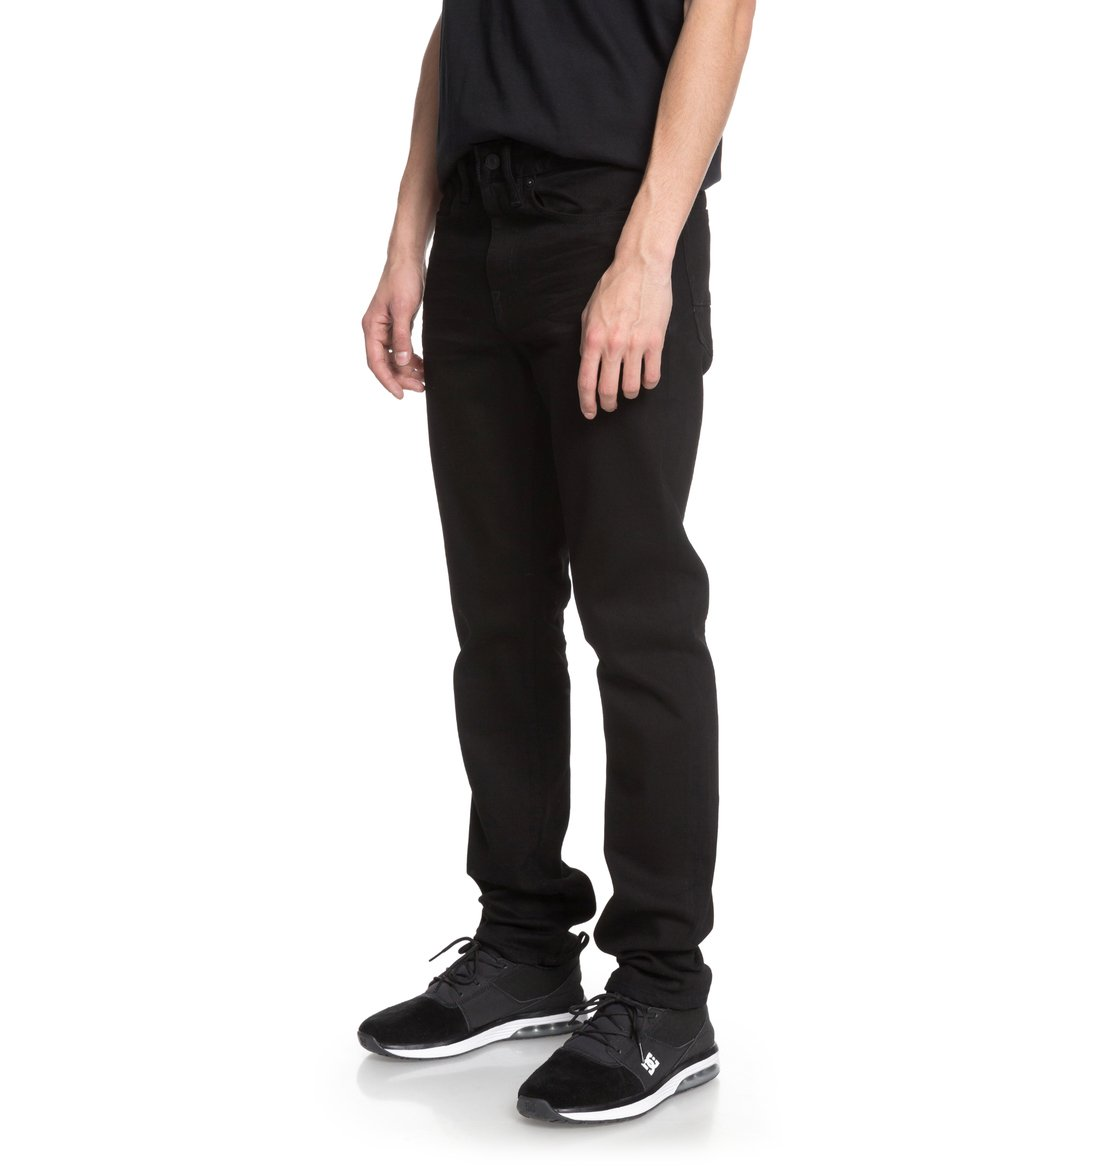 dc shoes Worker Black Rinse Slim - Jeans vestibilità slim da Uomo - Black - DC Shoes PAih7m